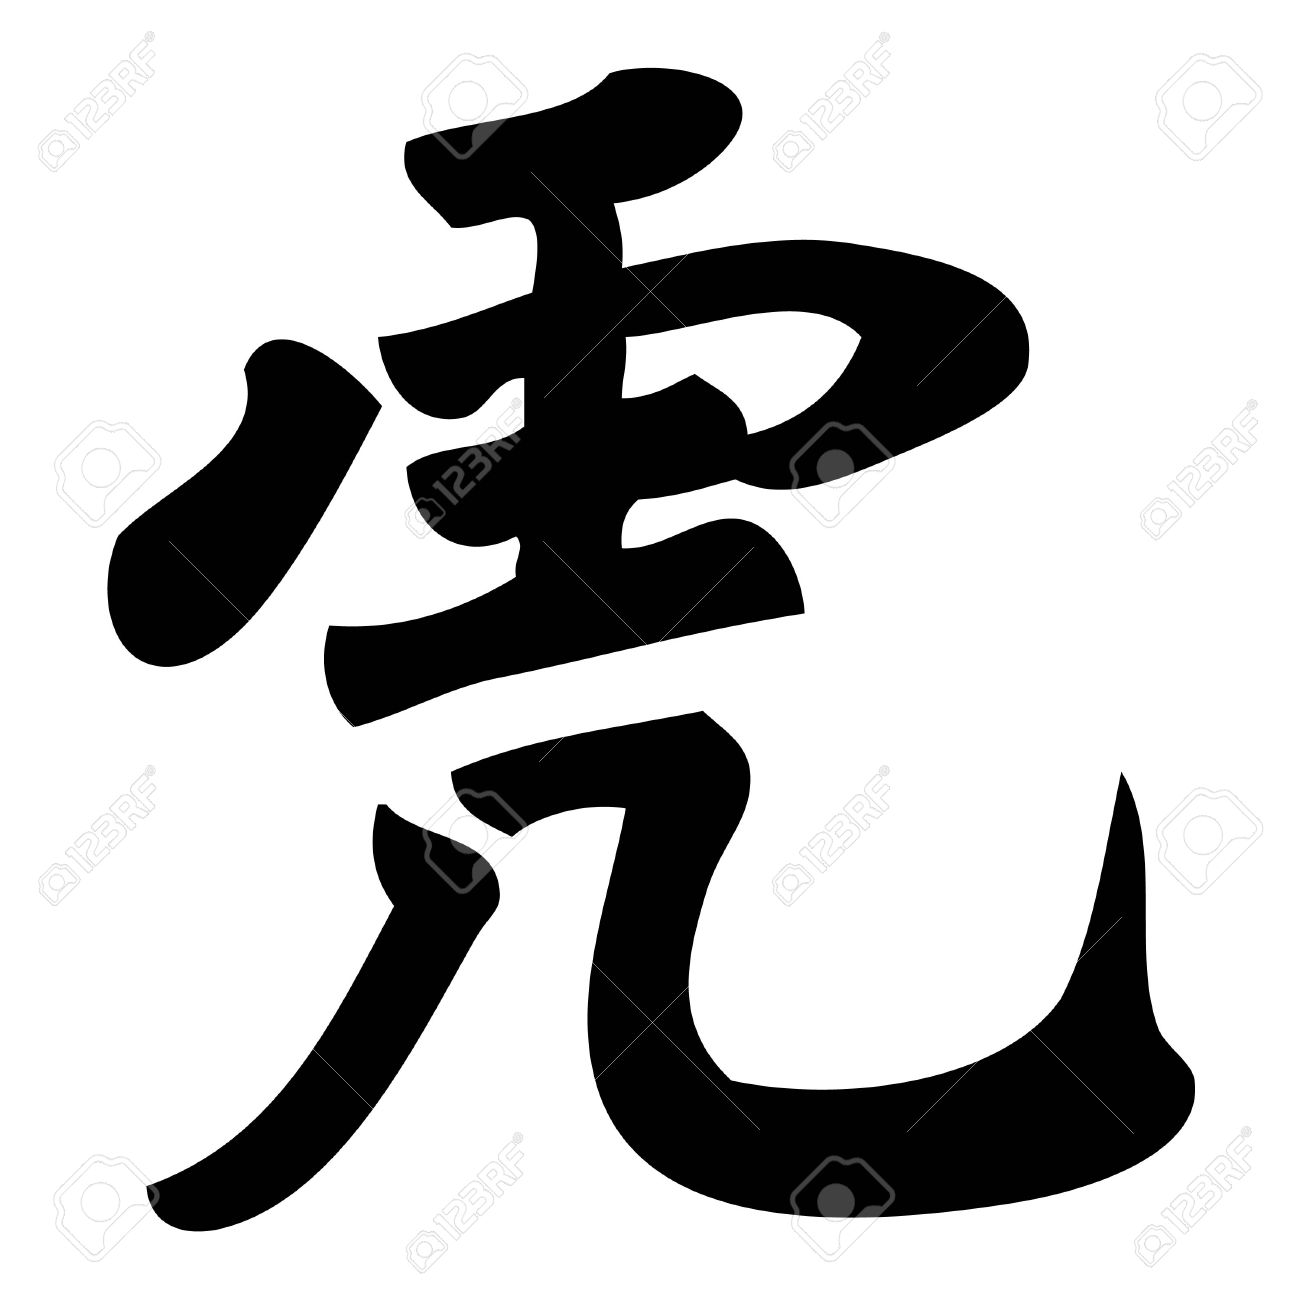 Tiger Symbol Chinese Choice Image Meaning Of Text Symbols